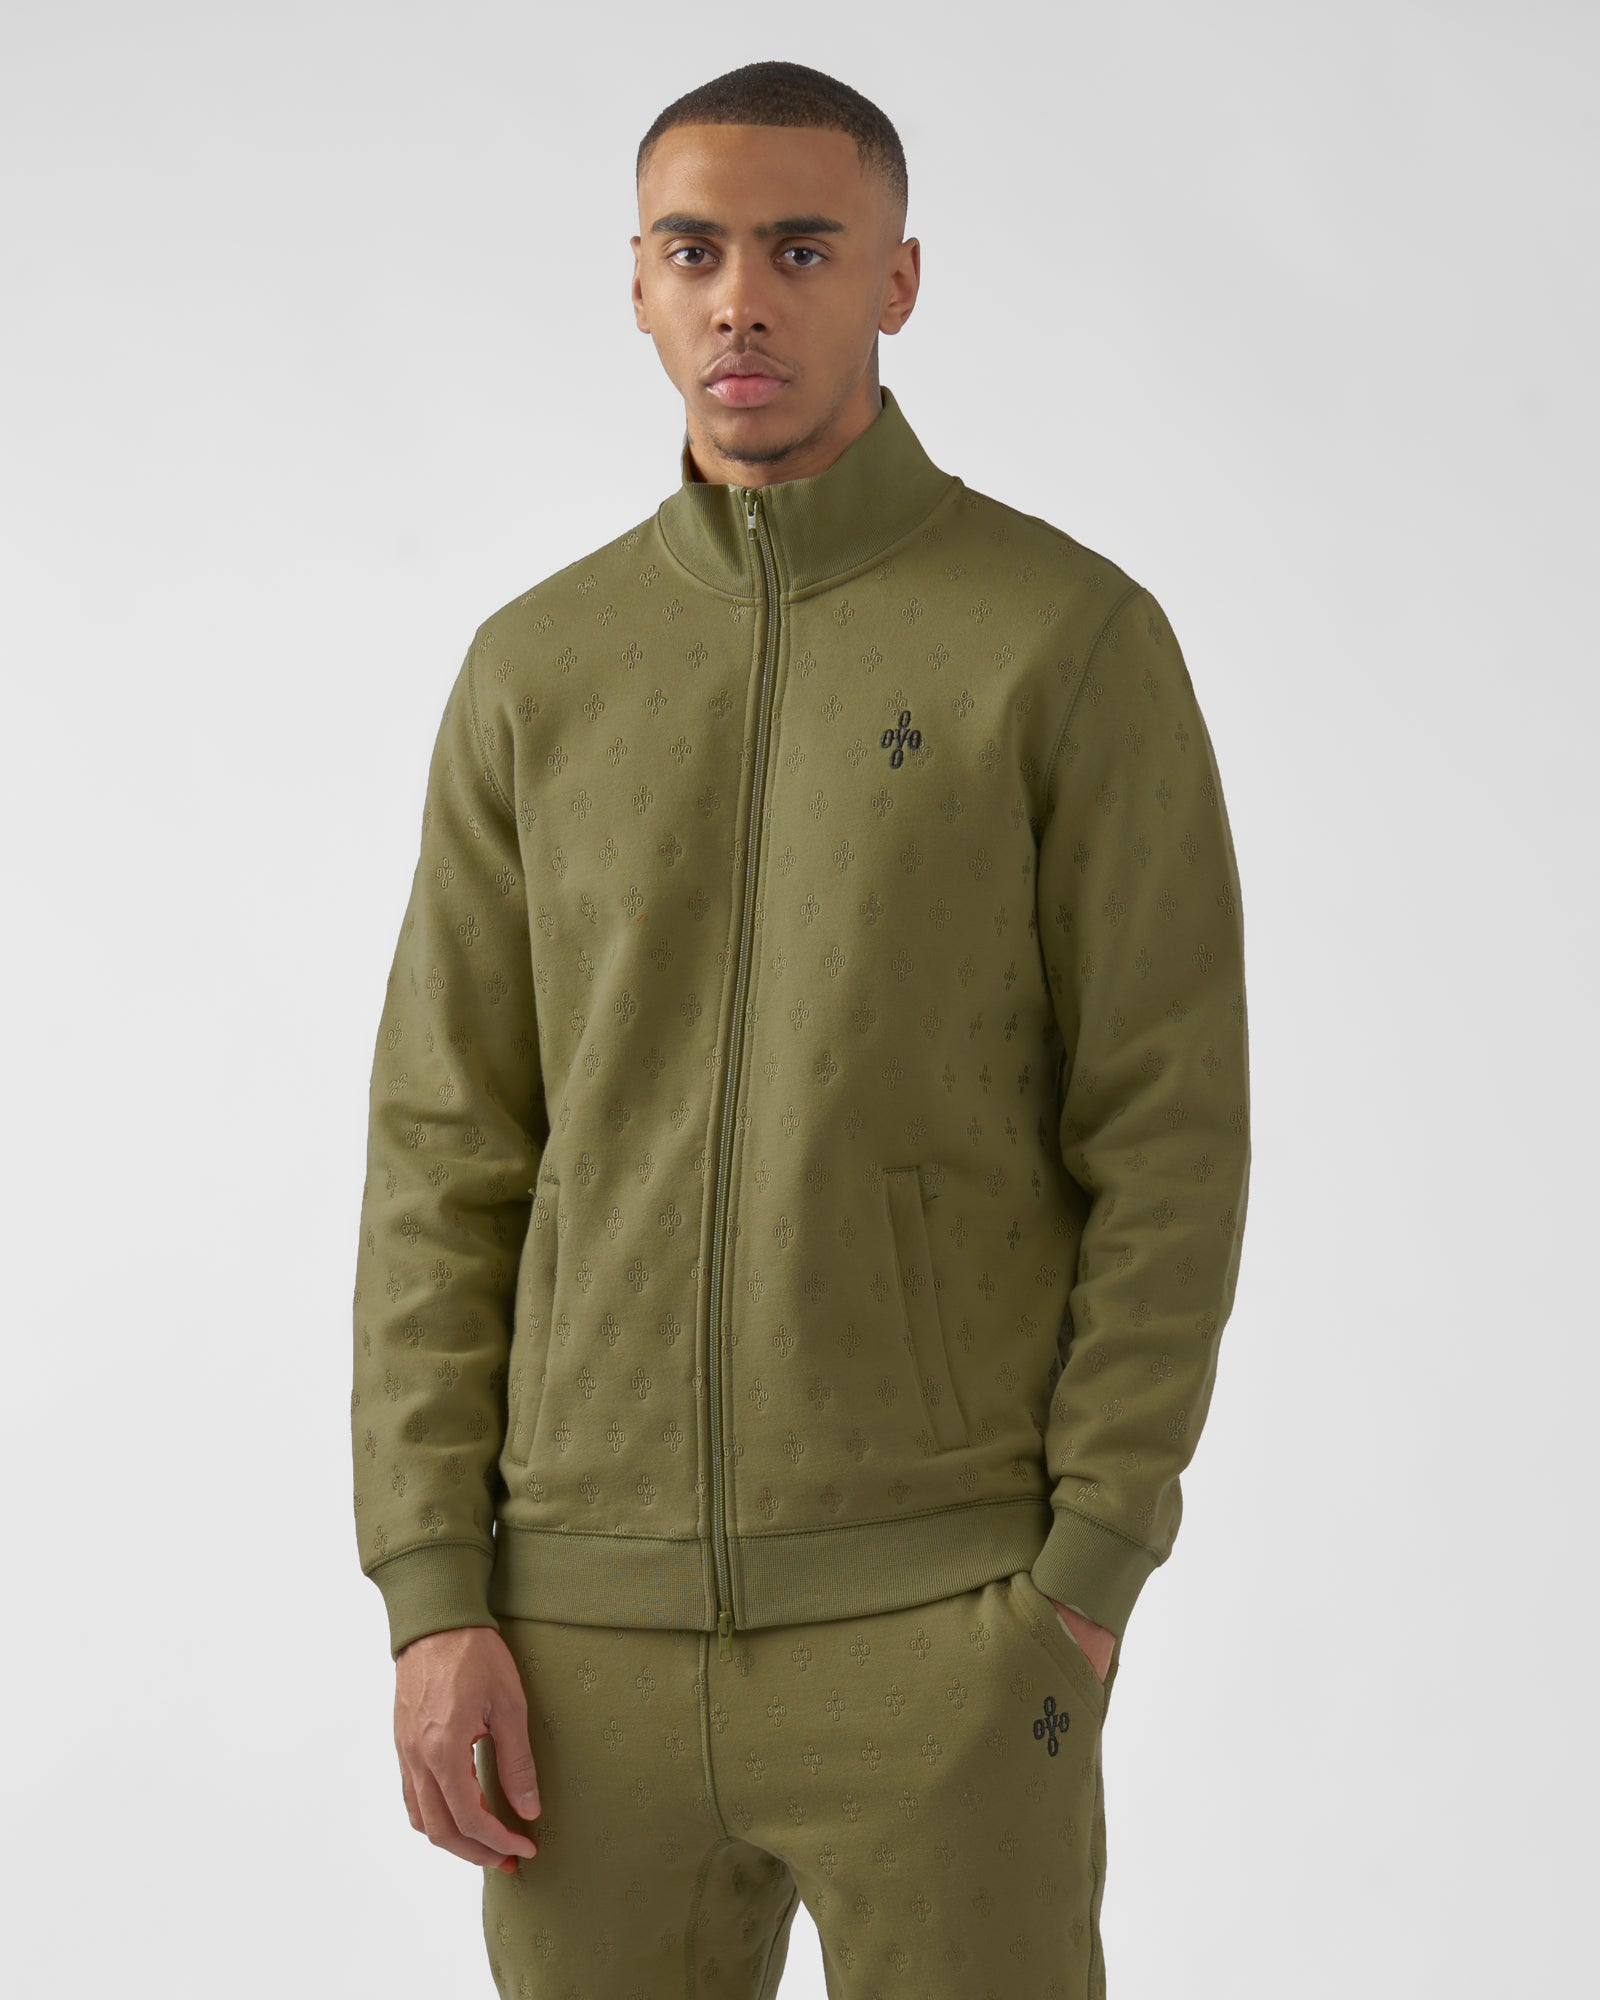 MONOGRAM EMBROIDERED TRACK JACKET - OLIVE IMAGE #3